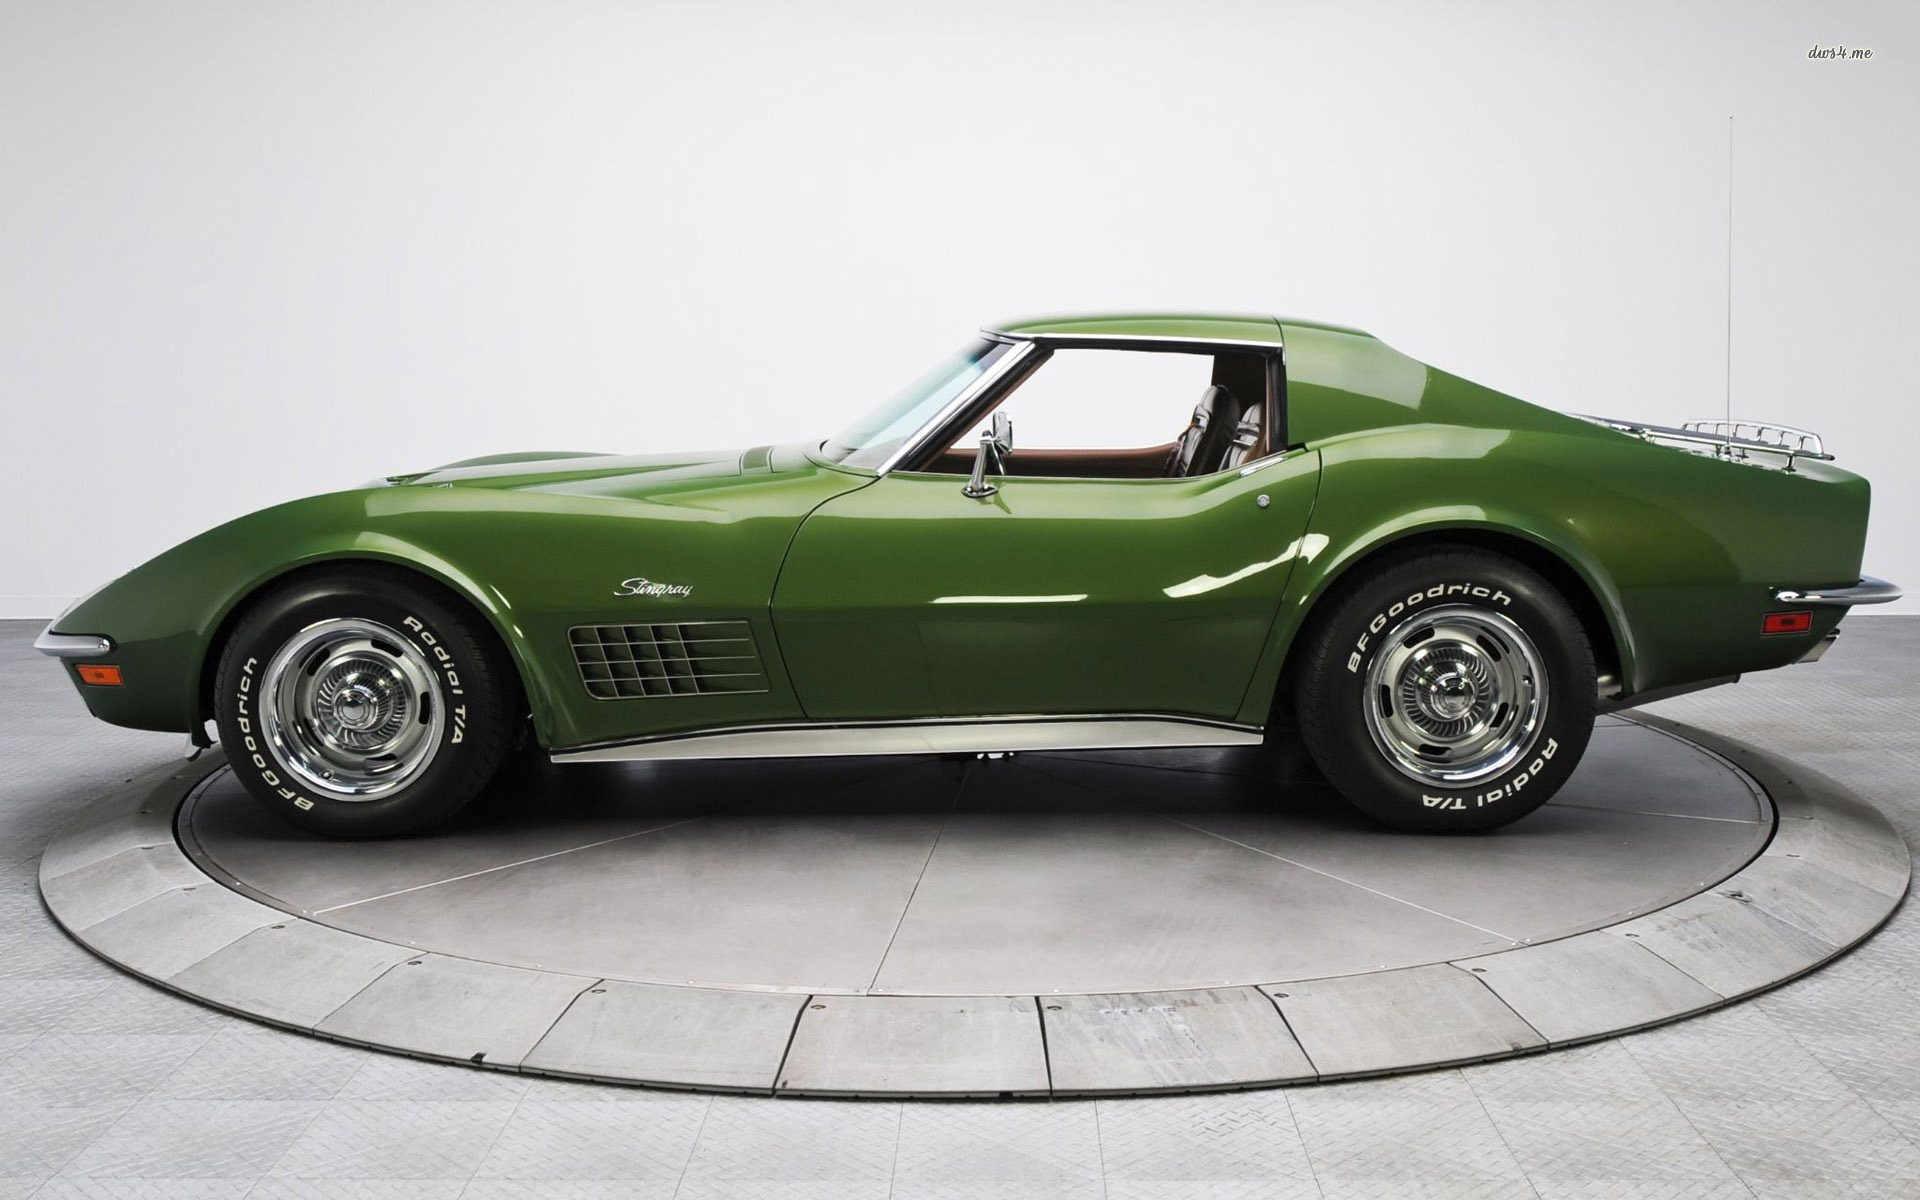 23471 chevrolet corvette stingray 454 1920x1200 car wallpaper 1970 c3 corvette ultimate guide (overview, specs, vin info 1994 LT1 Corvette at gsmportal.co